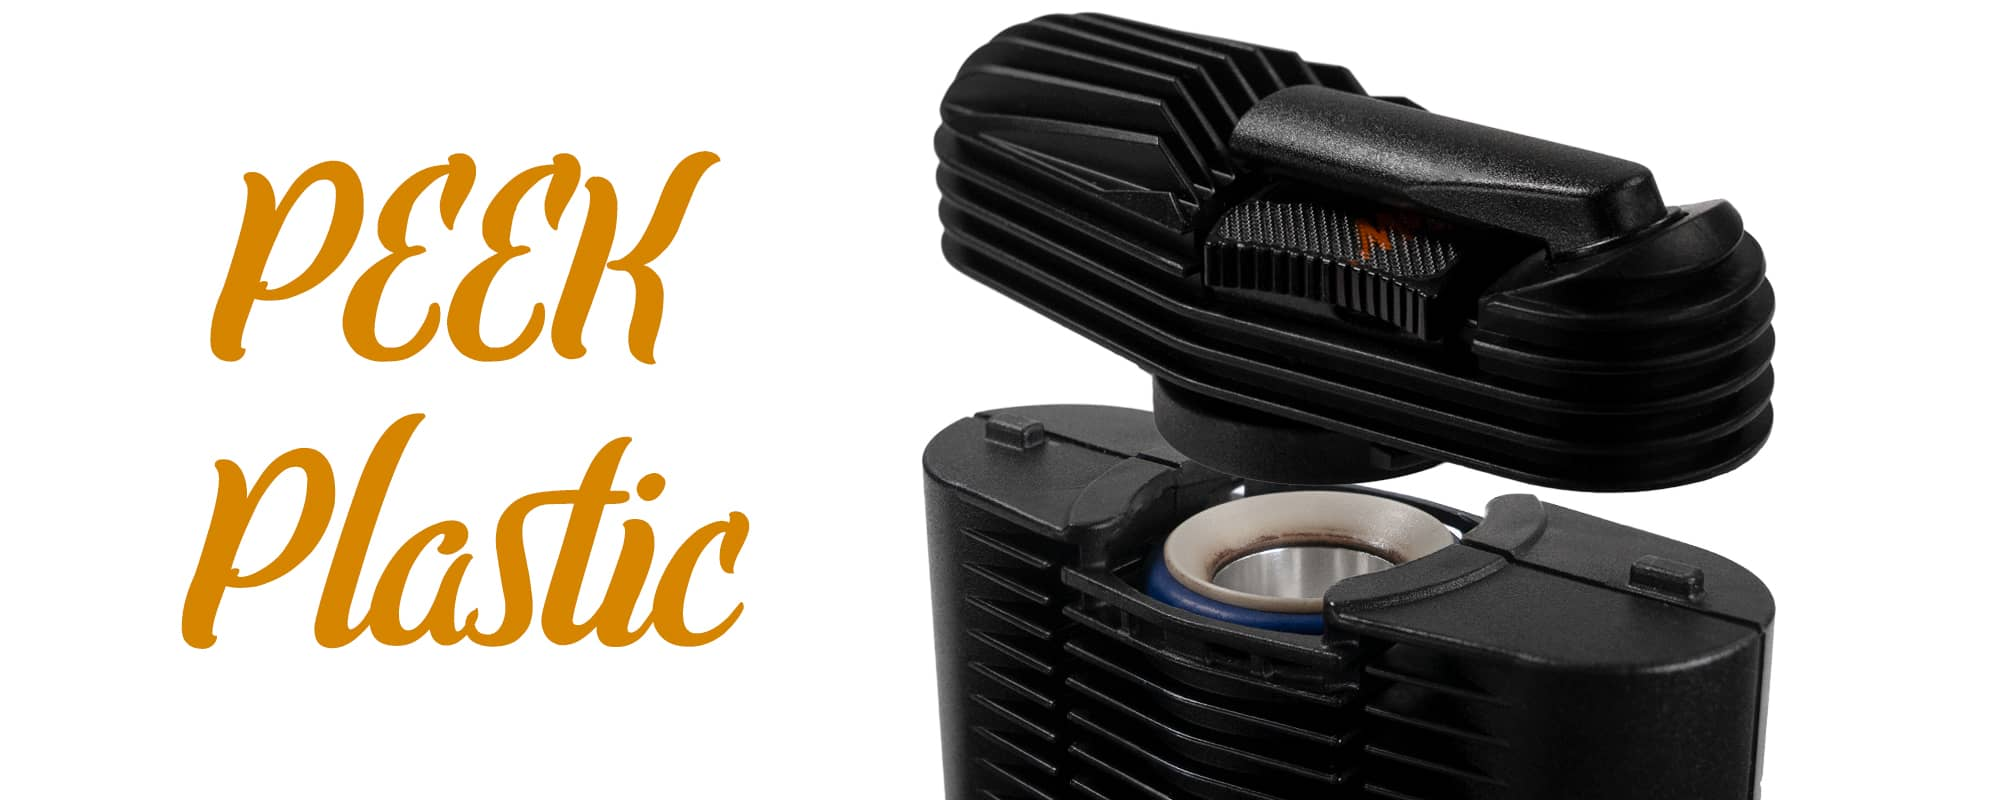 What is the Mighty vaporizer